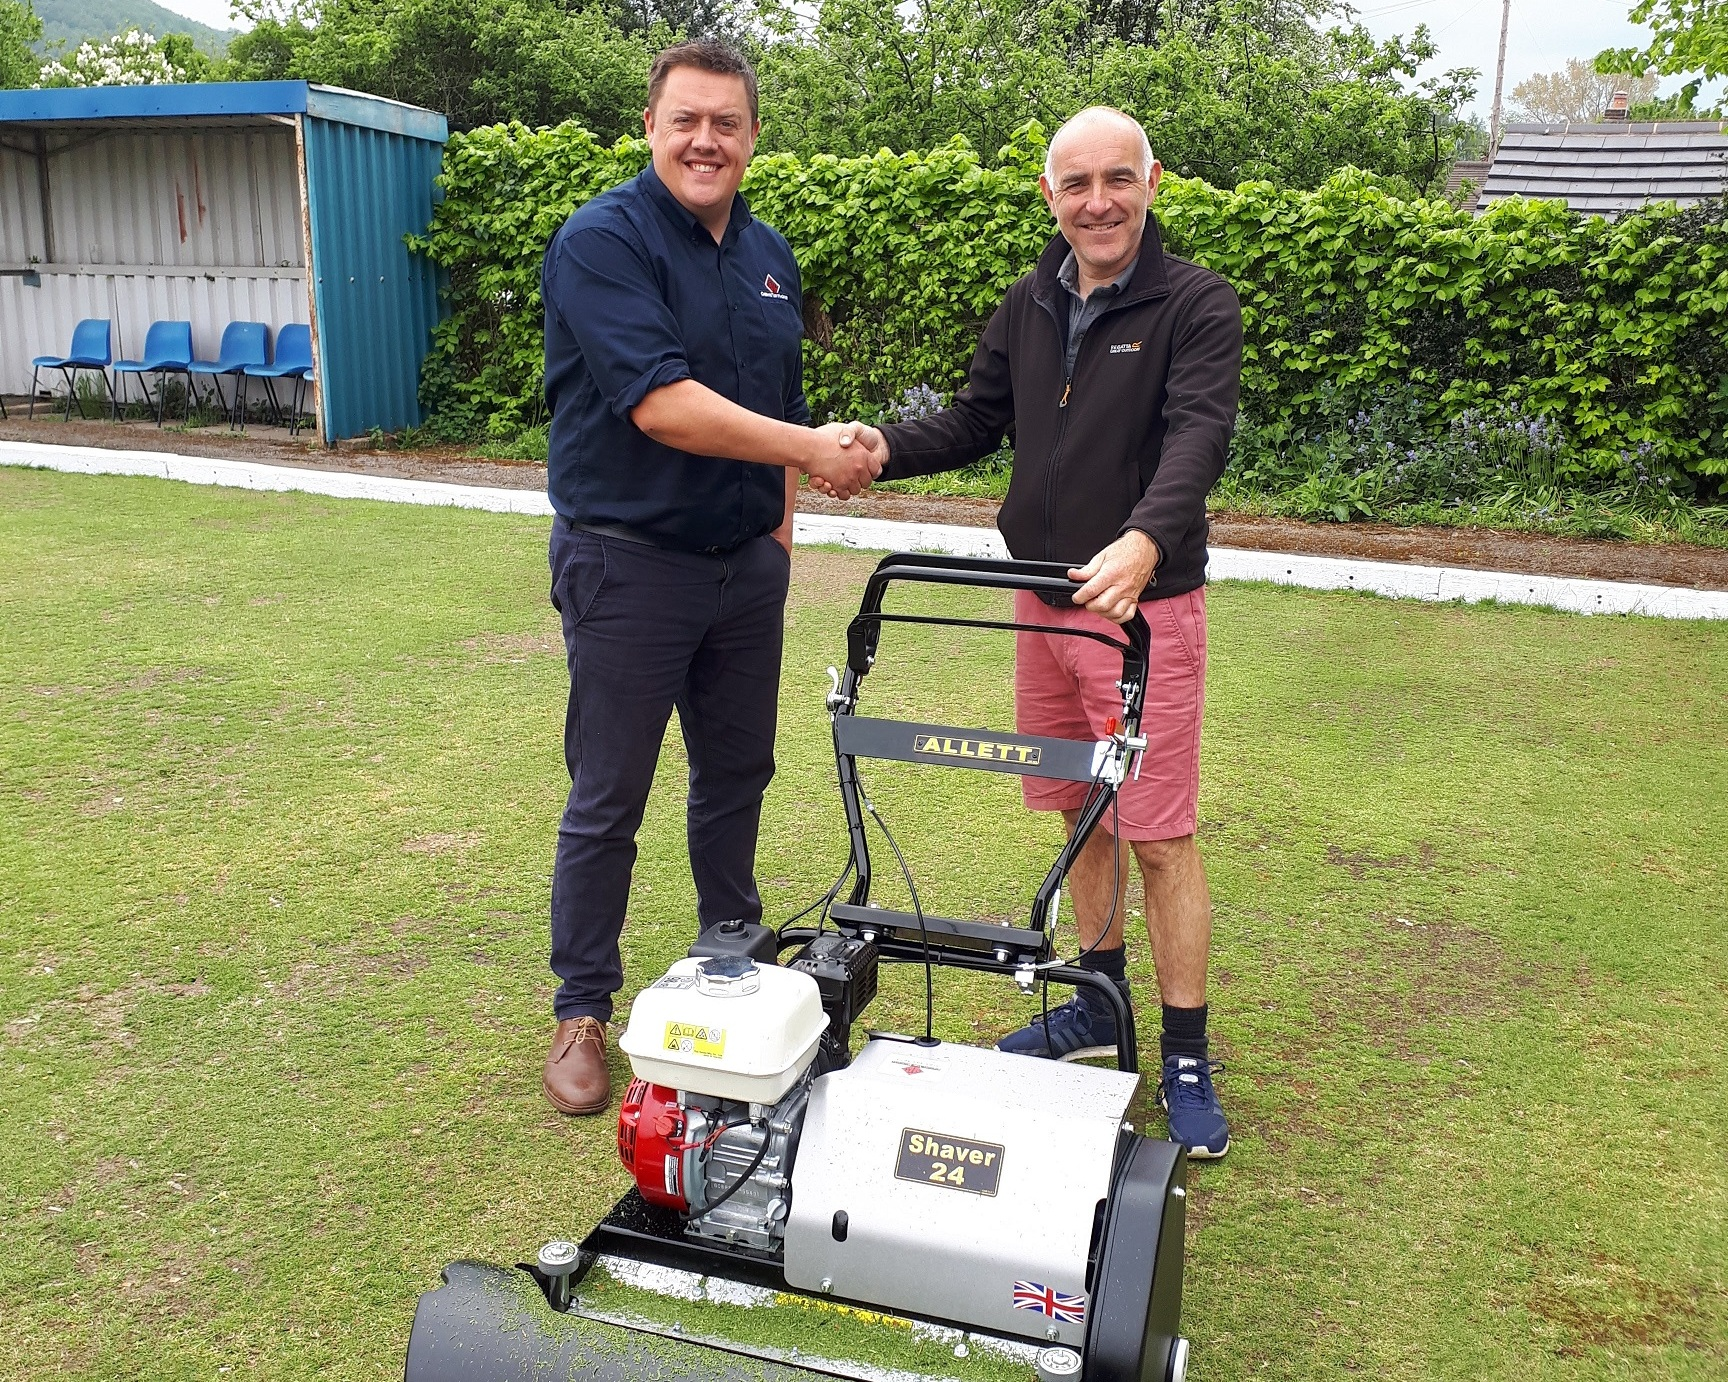 Head Greensman Barry Ellams (R) receiving the mower from Greg Cain from Cheshire Turf Machiner